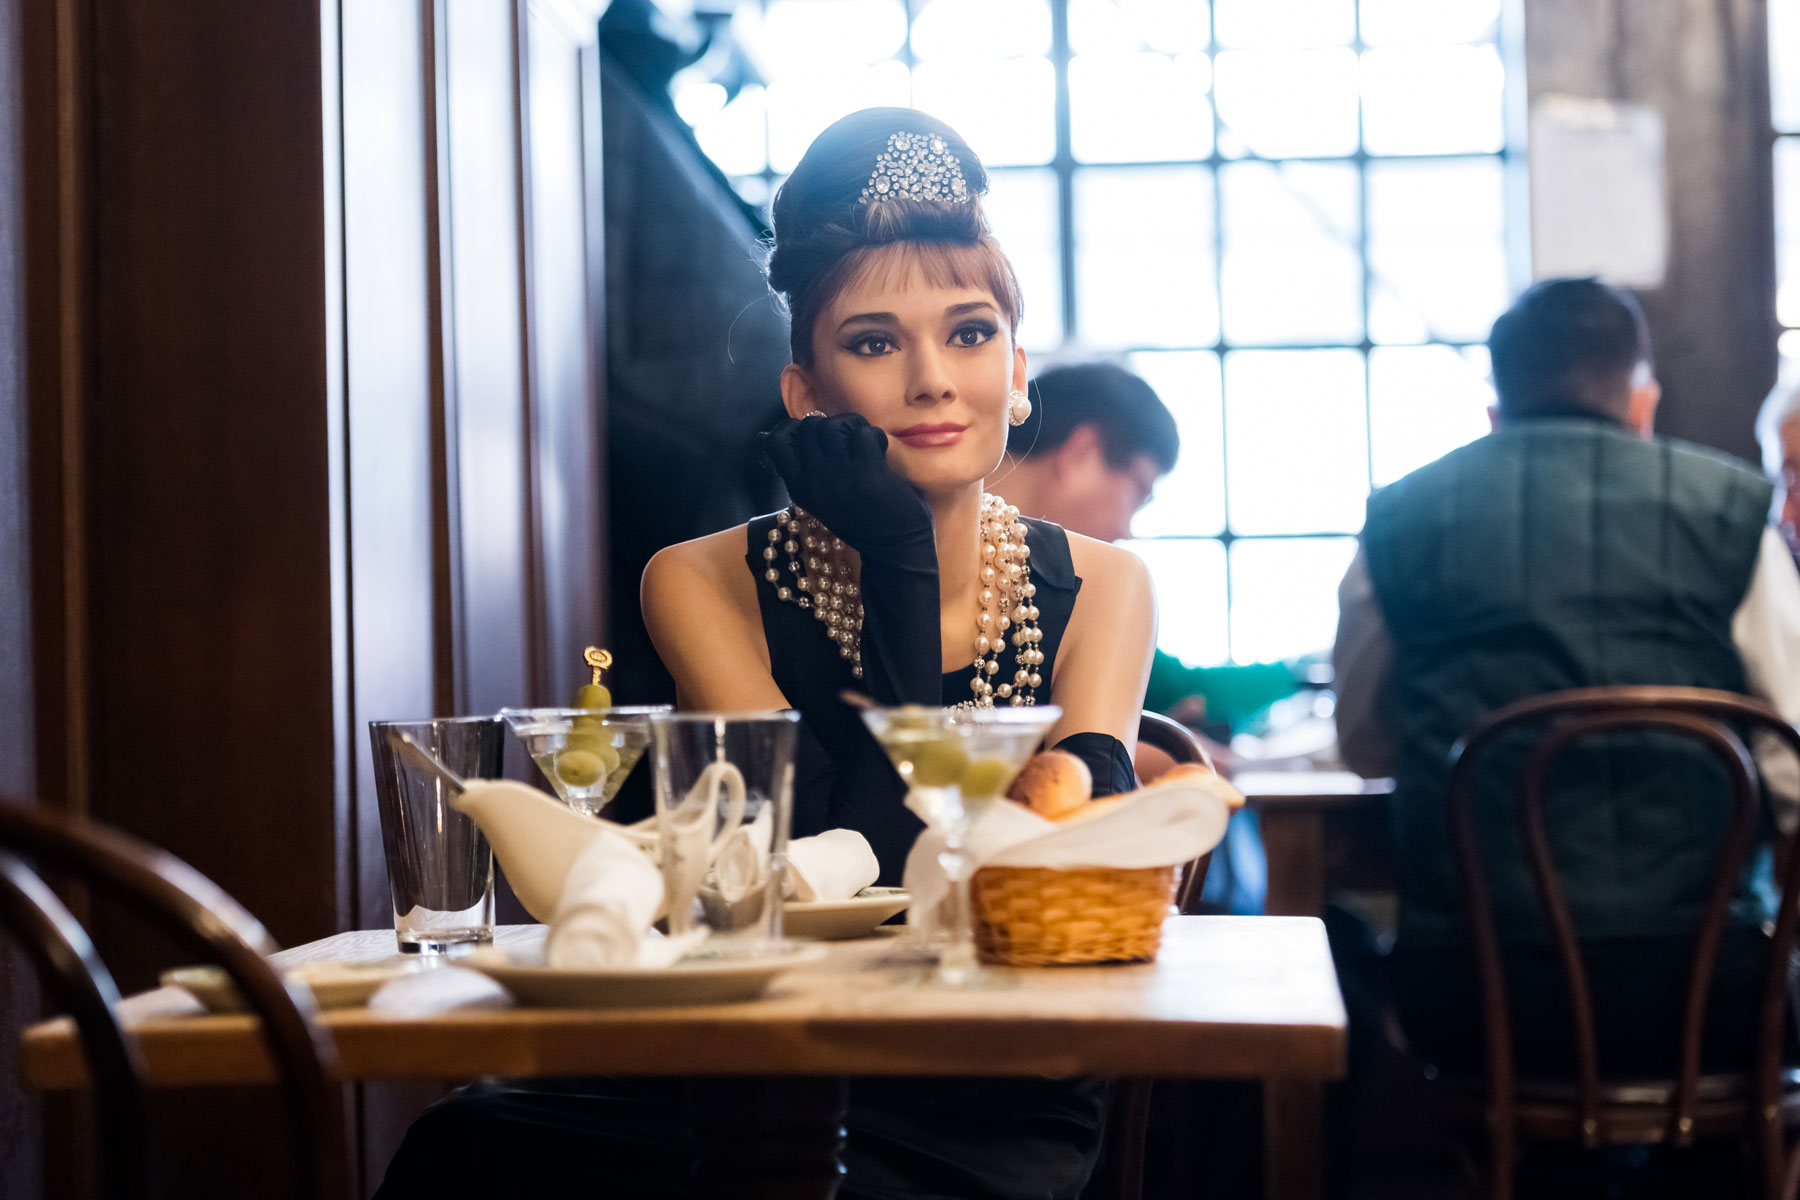 Madame Tussaud's Audrey Hepburn wax figure at a dining table